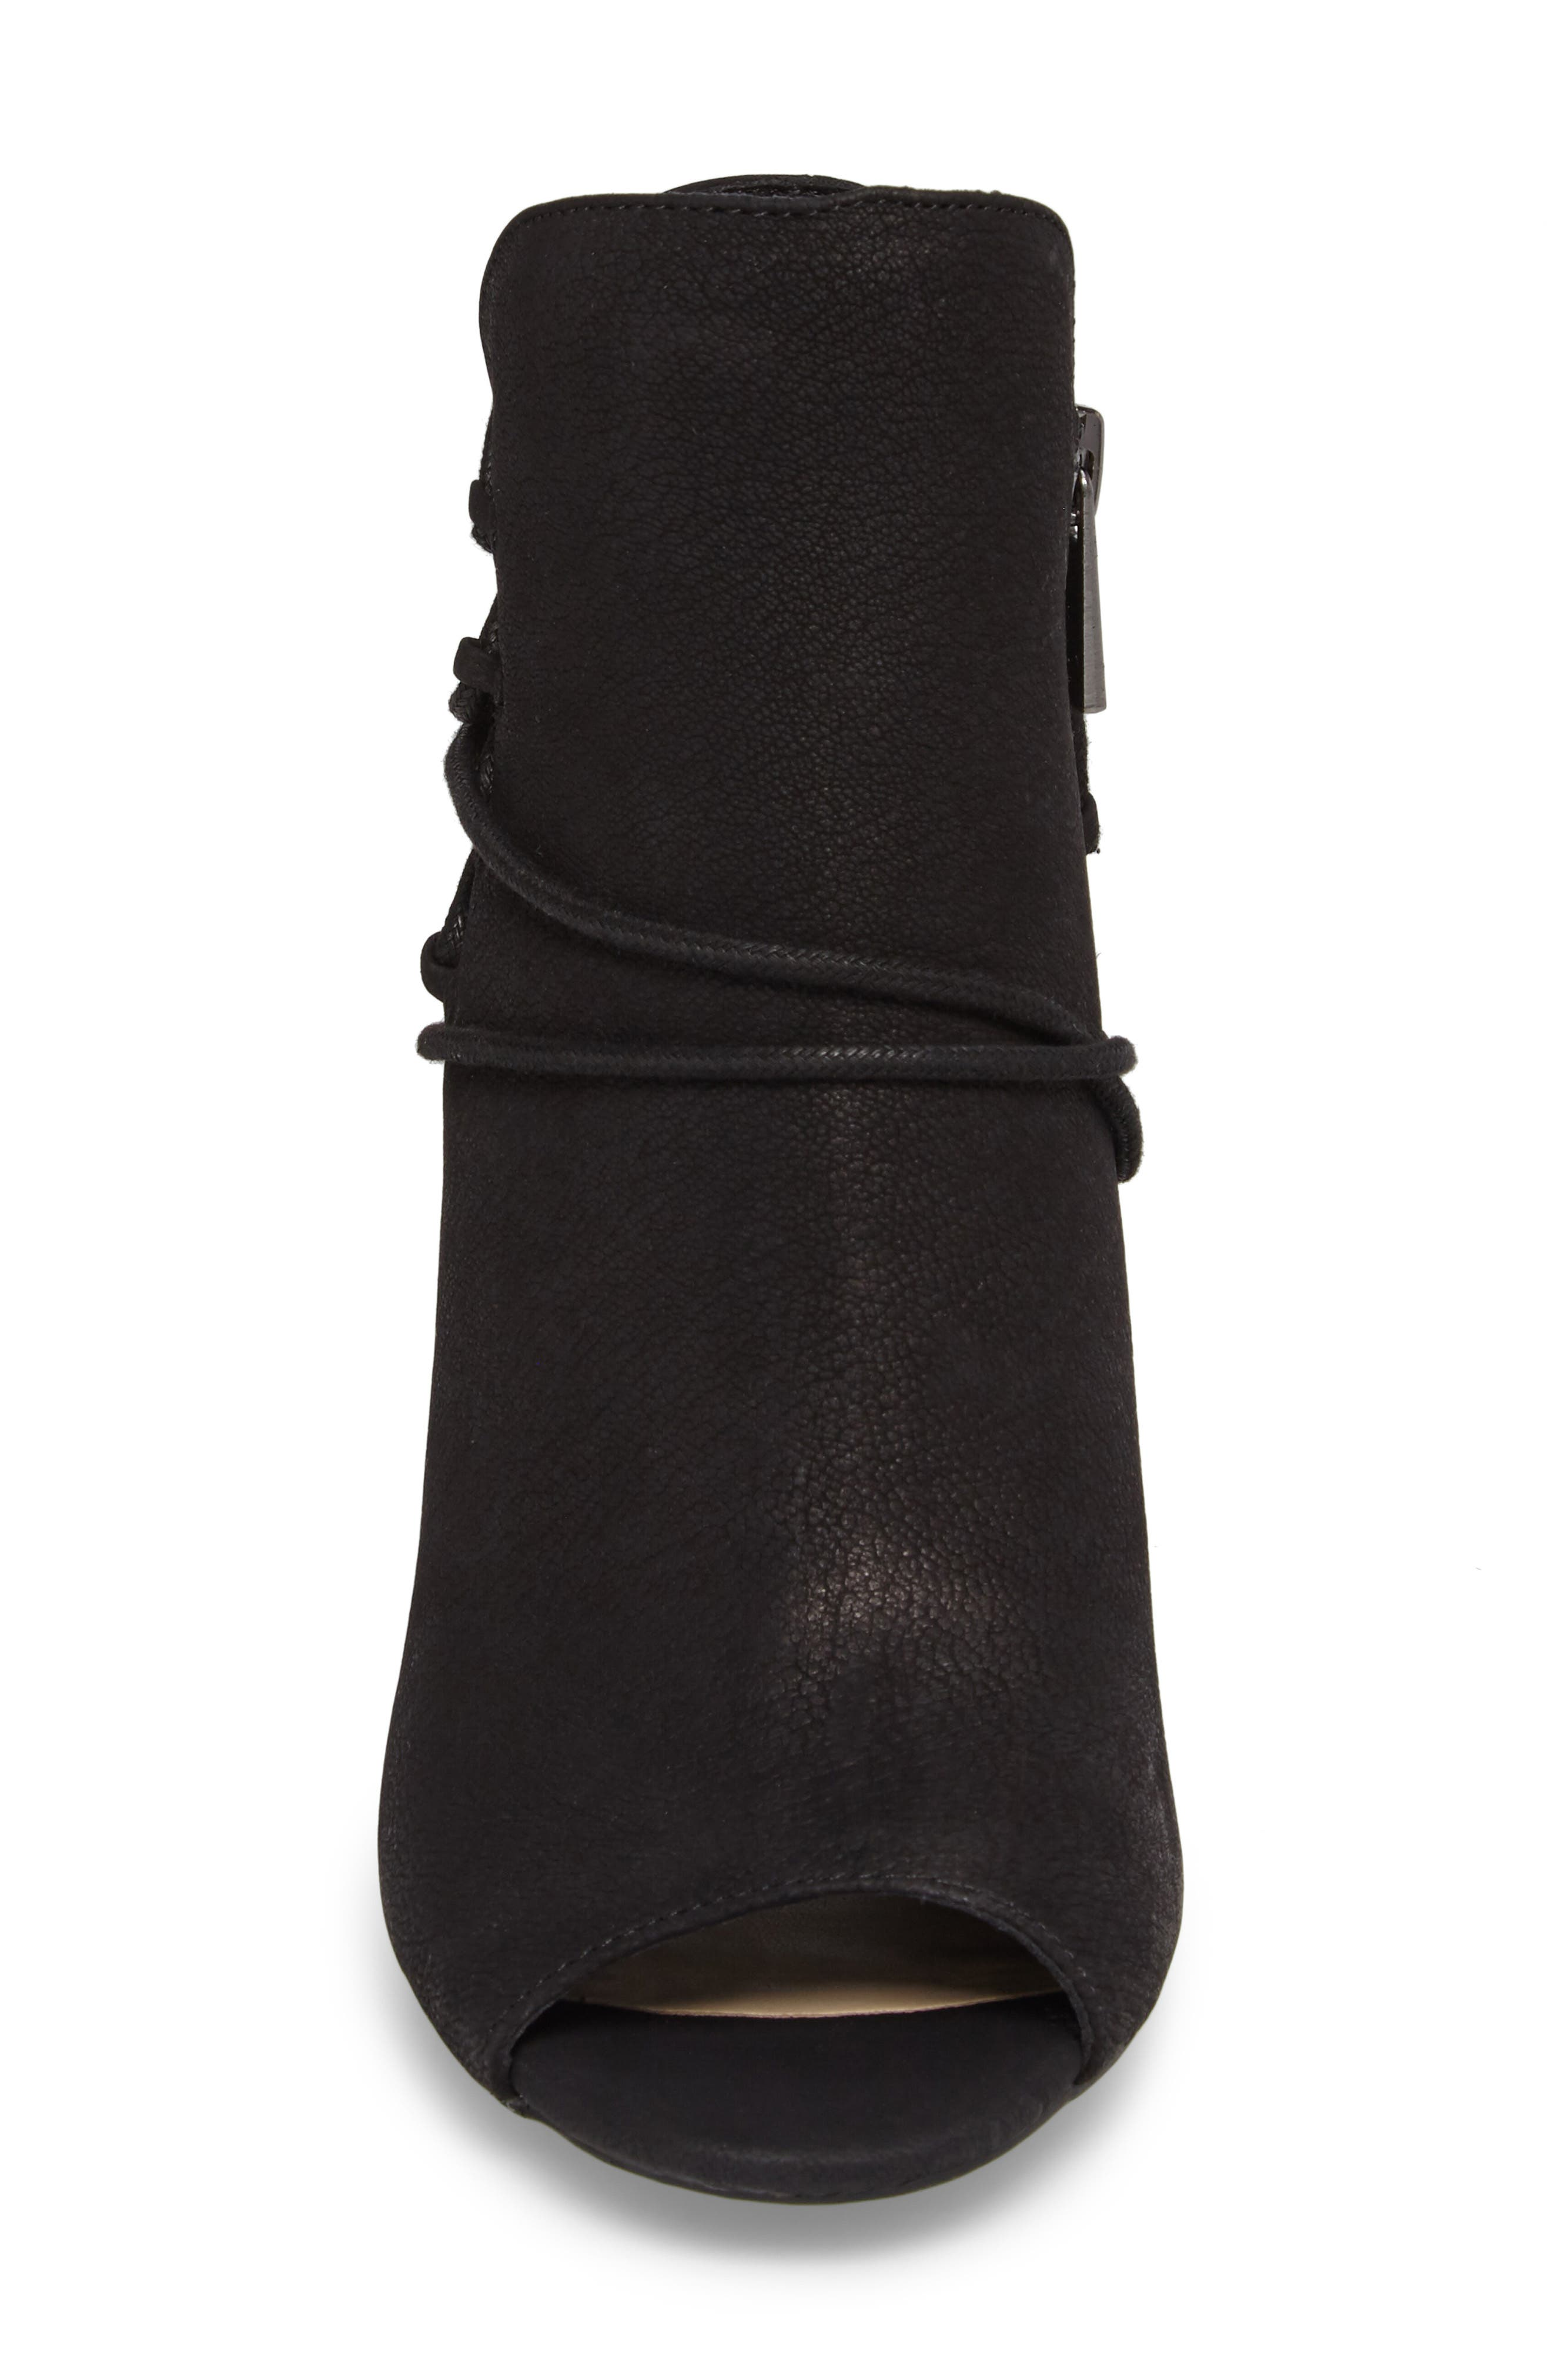 Remni Peep Toe Bootie,                             Alternate thumbnail 4, color,                             001